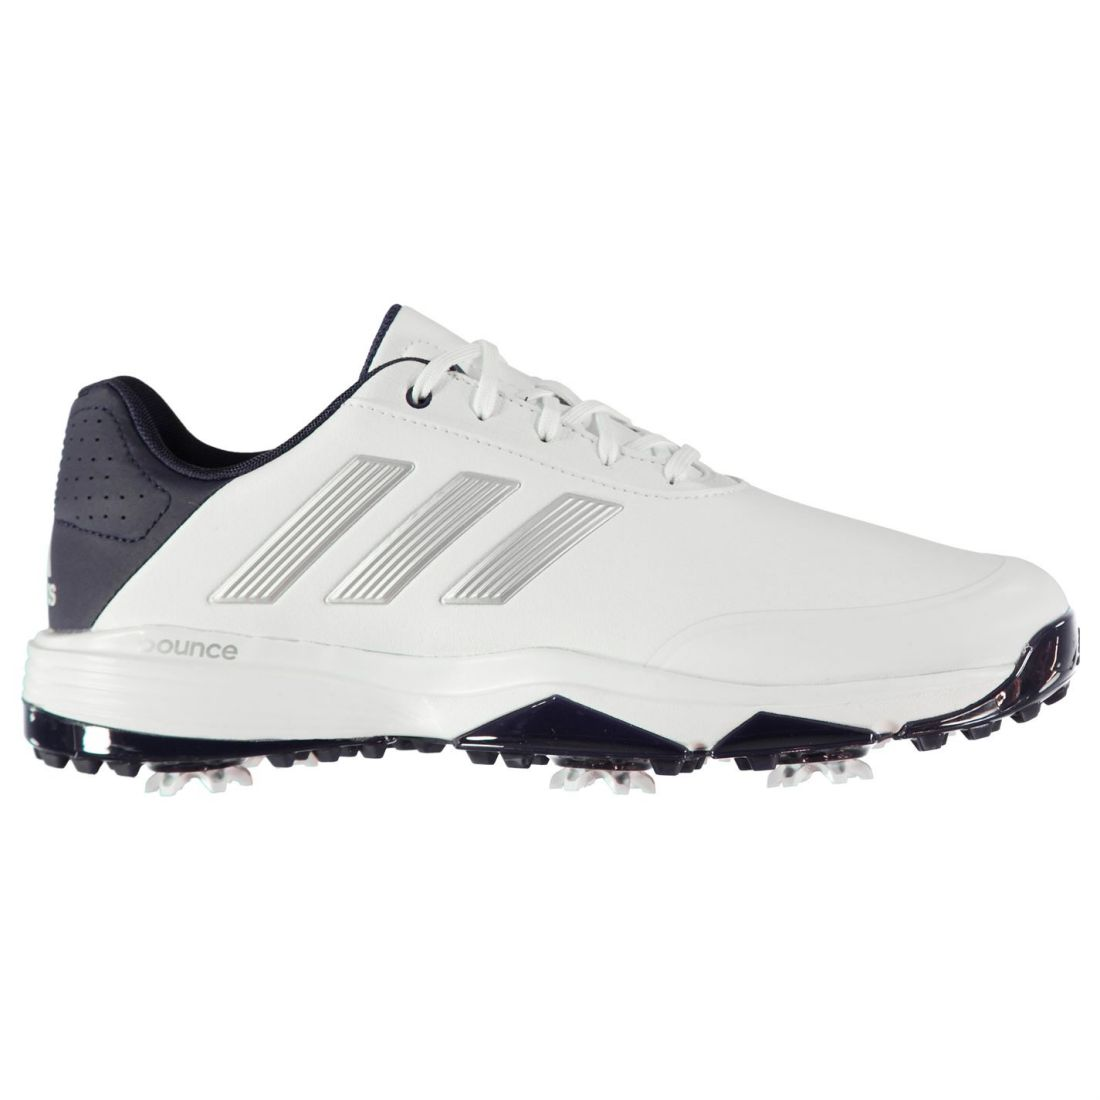 db1f2bdef742 adidas Mens Power Bounce Golf Shoes Spiked Lace Up Padded Ankle Collar  Tongue